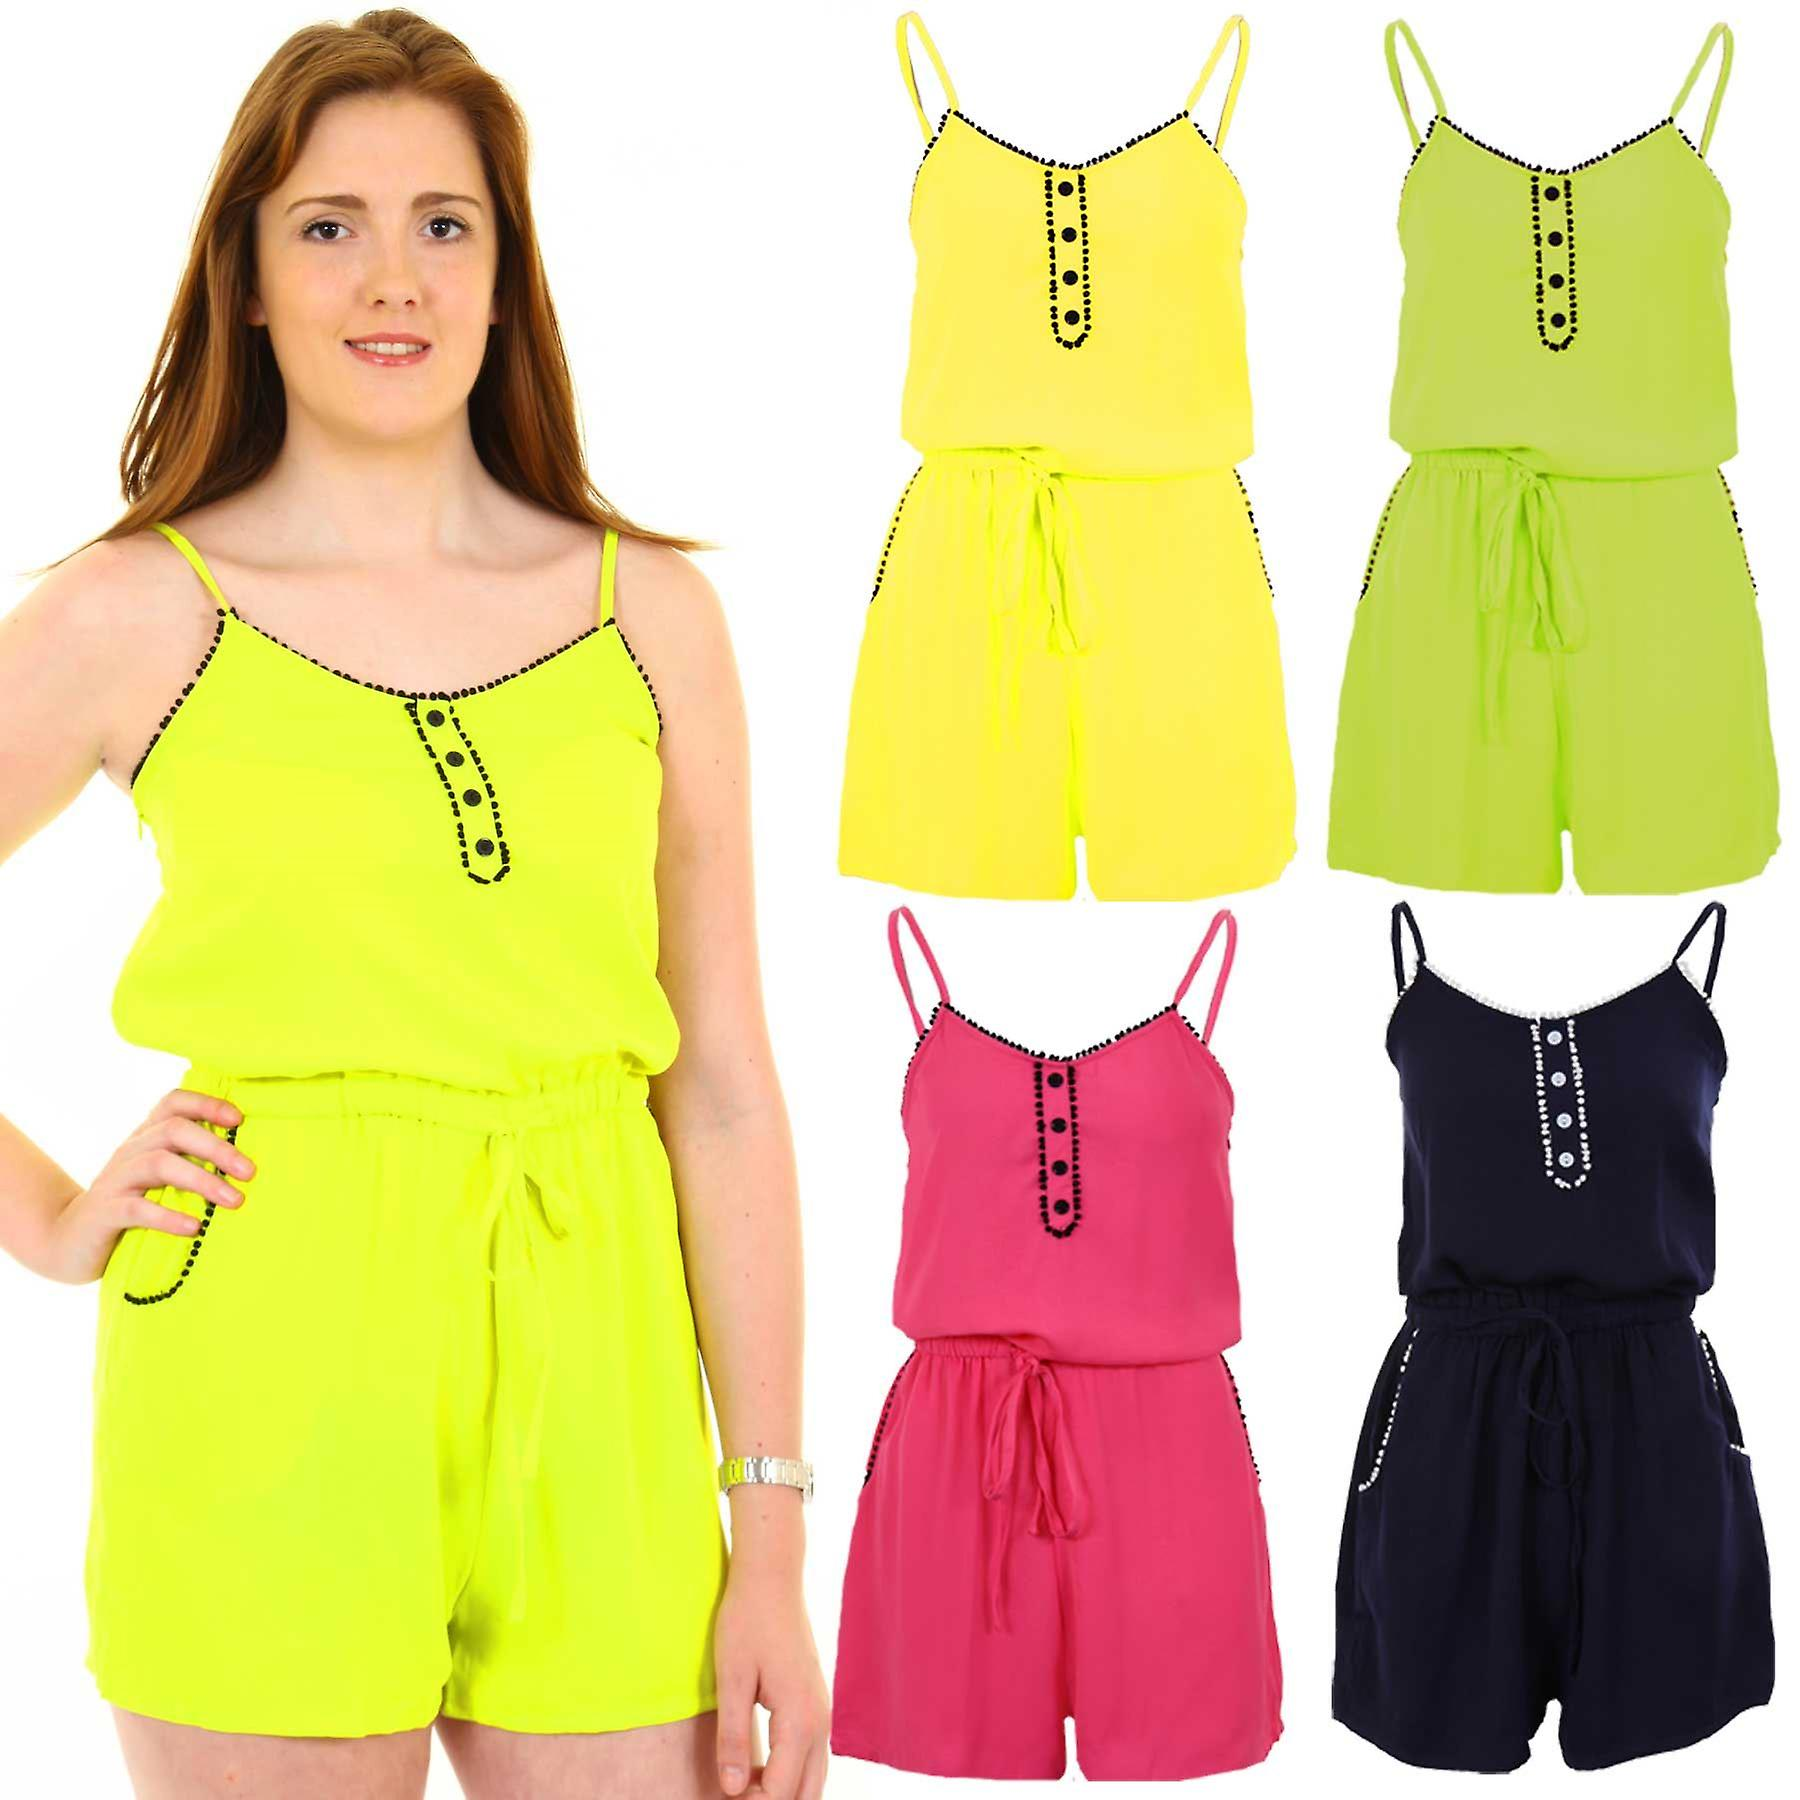 Ladies Button Stitched Front Edging Gathered Tie Waist Women's Summer Playsuit